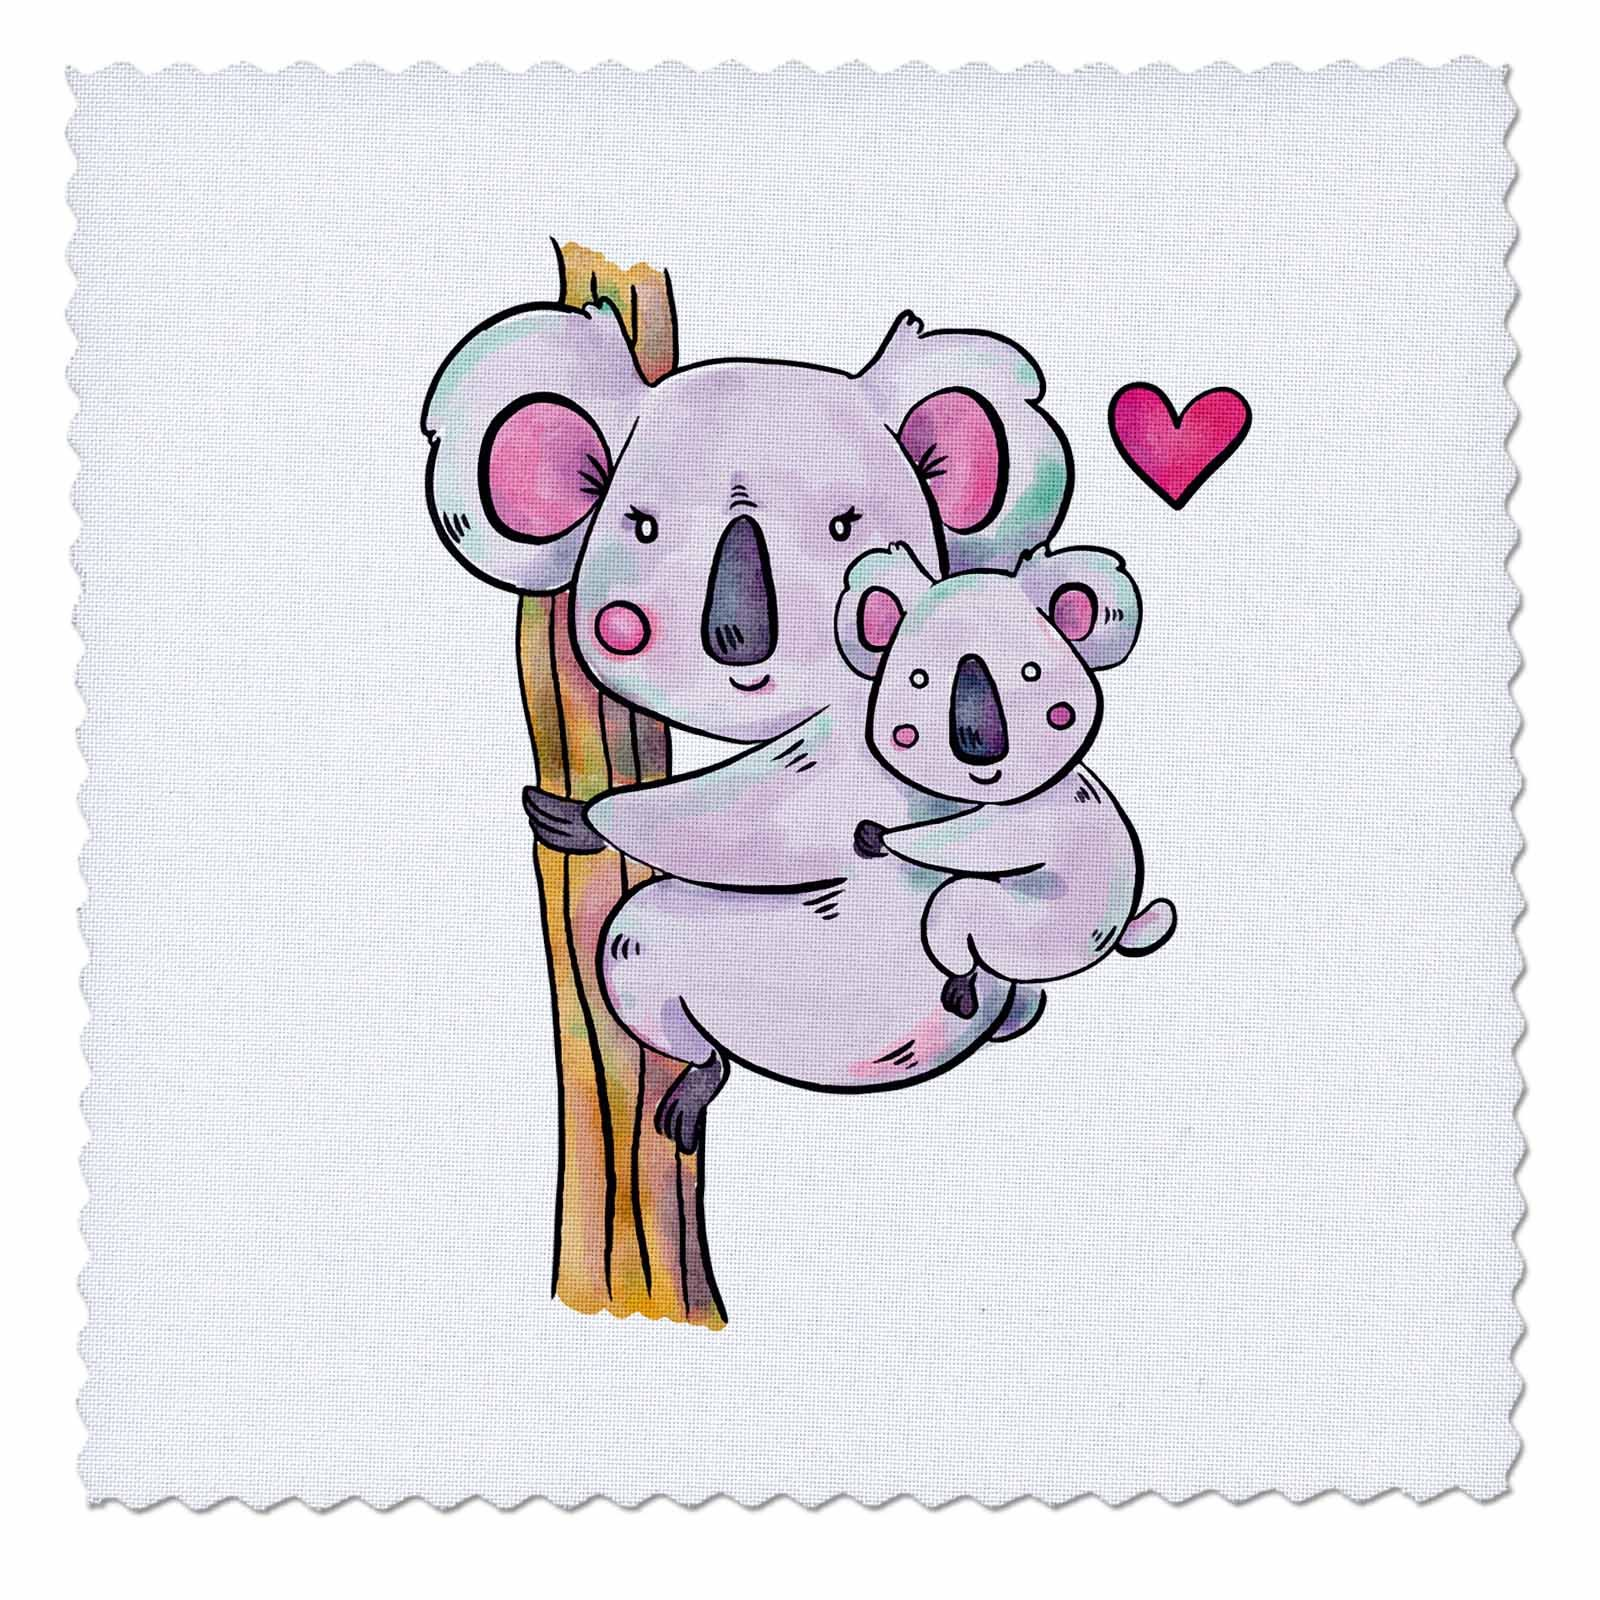 3dRose Sven Herkenrath Animal - Australia Koala Bear Child and Mother with Purple Colors - 12x12 inch quilt square (qs_280318_4) by 3dRose